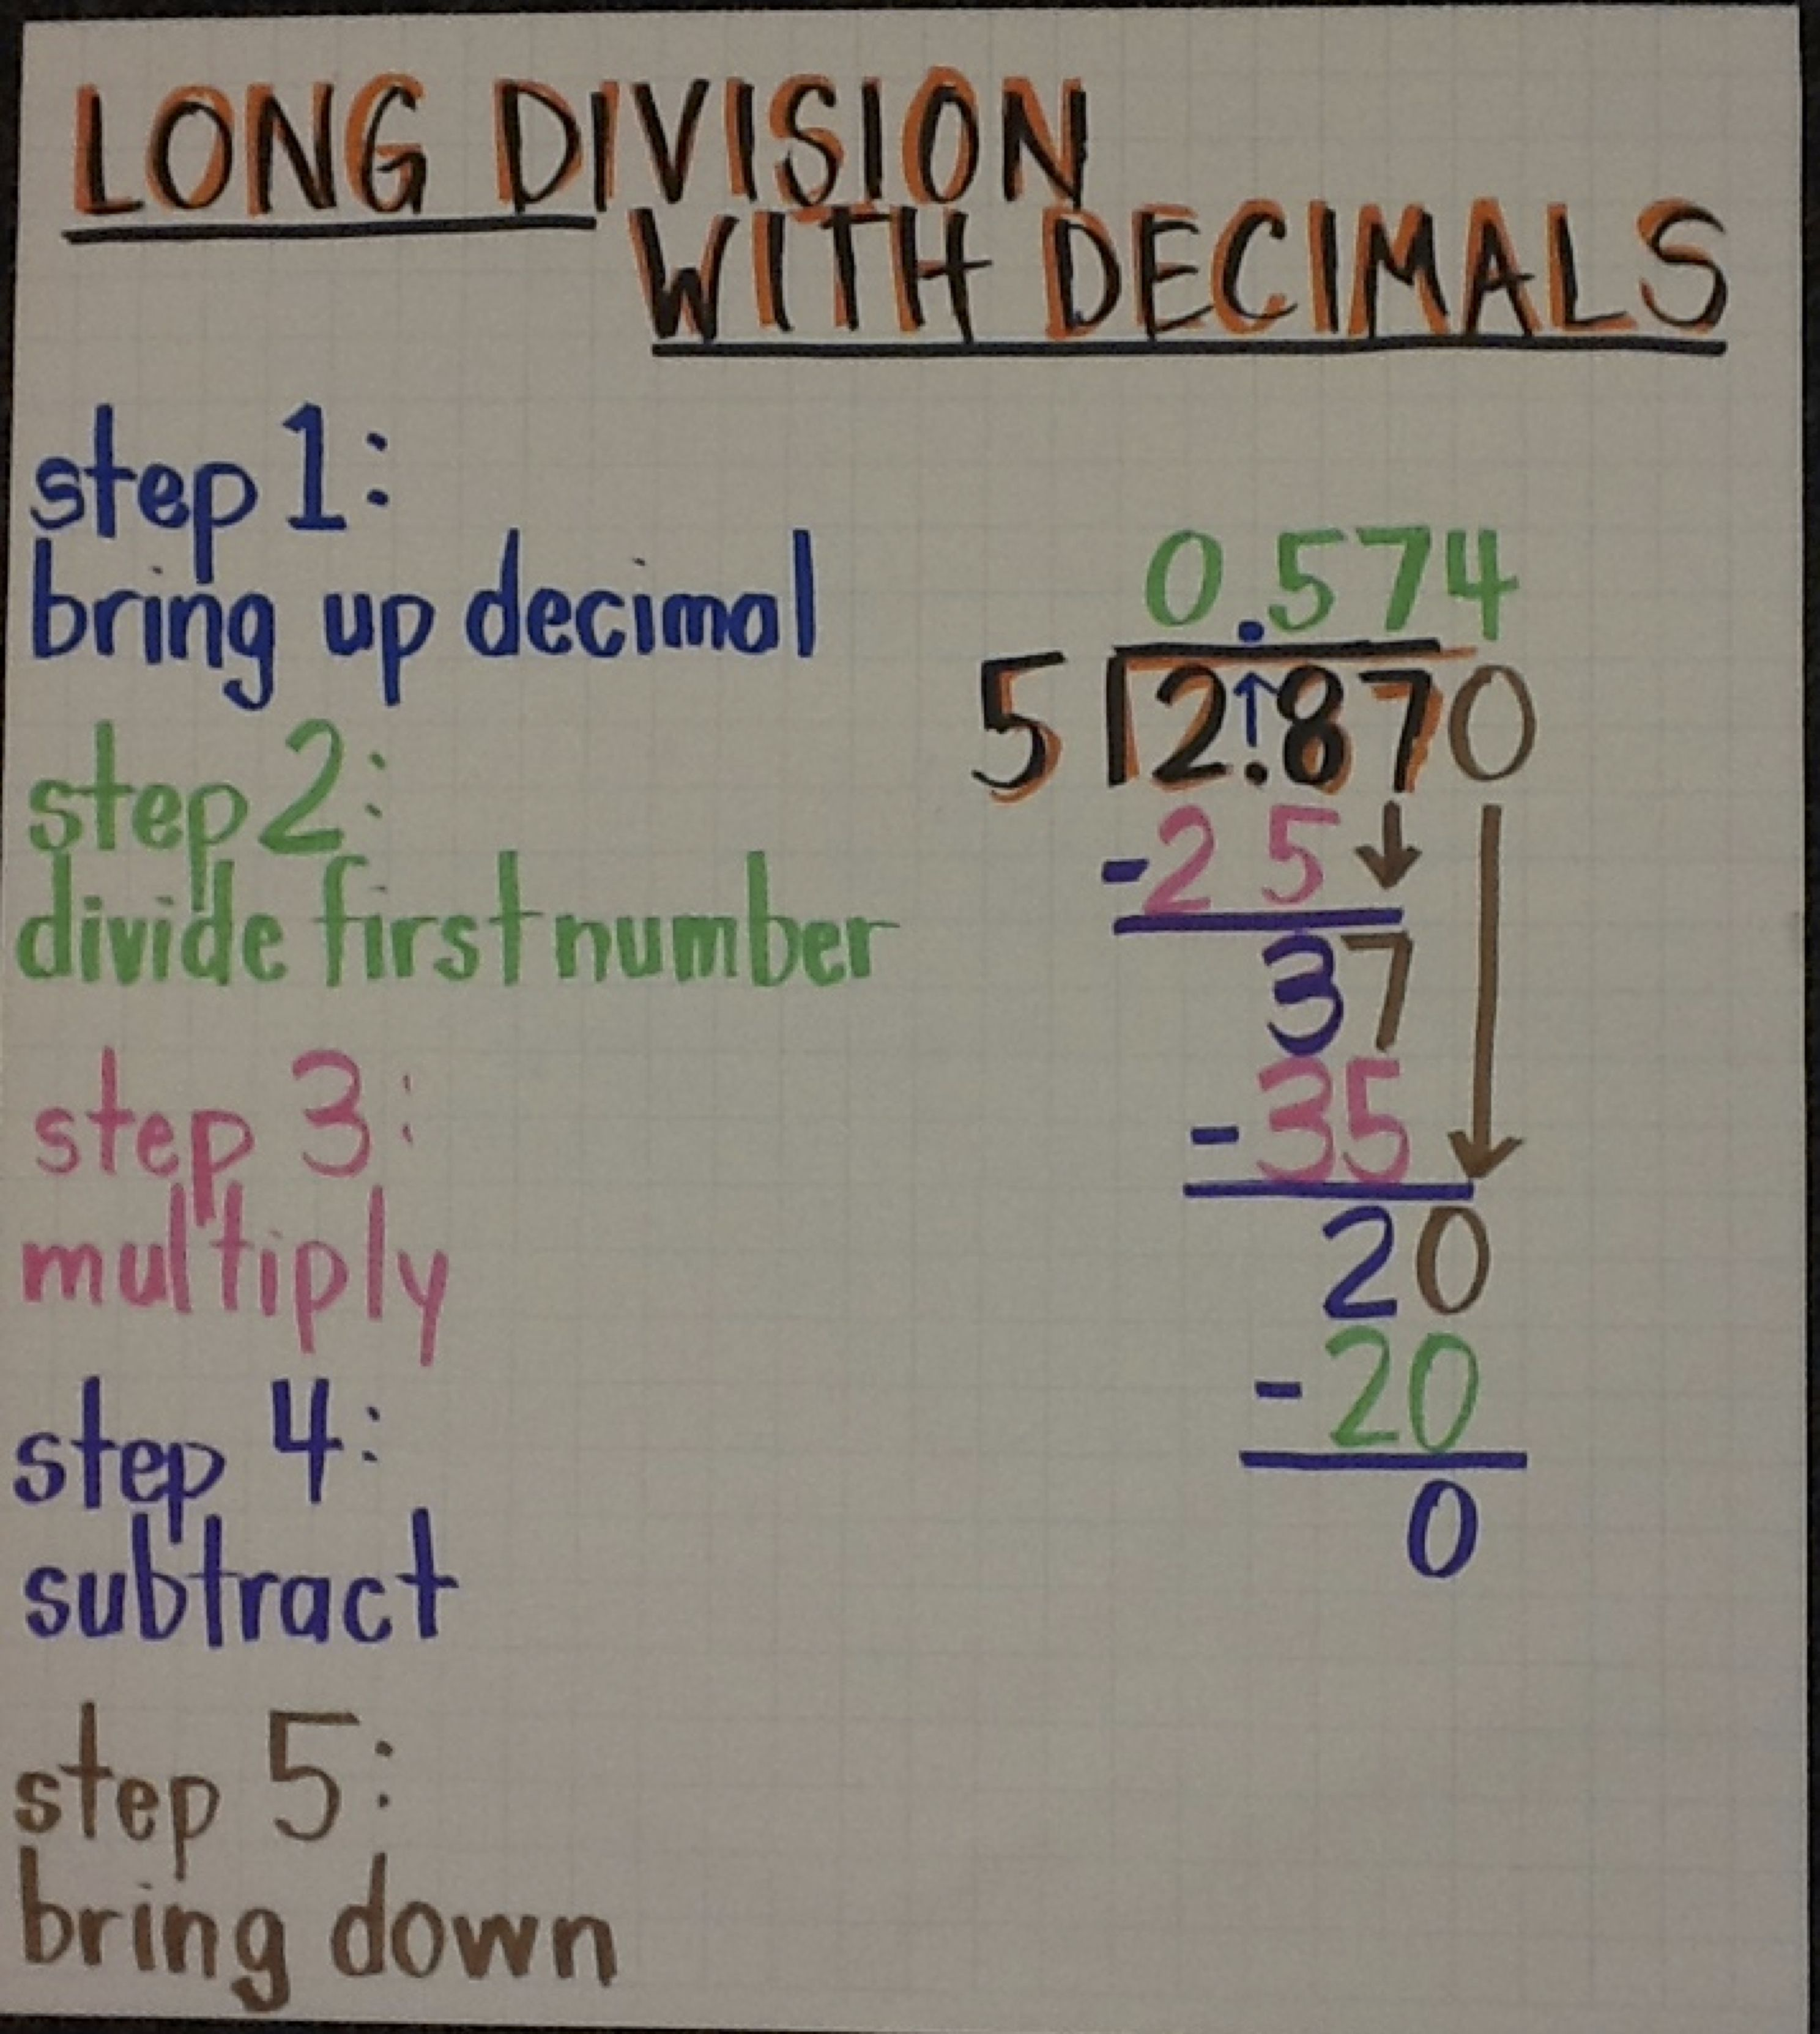 Long Division With Decimals Mathtutoring